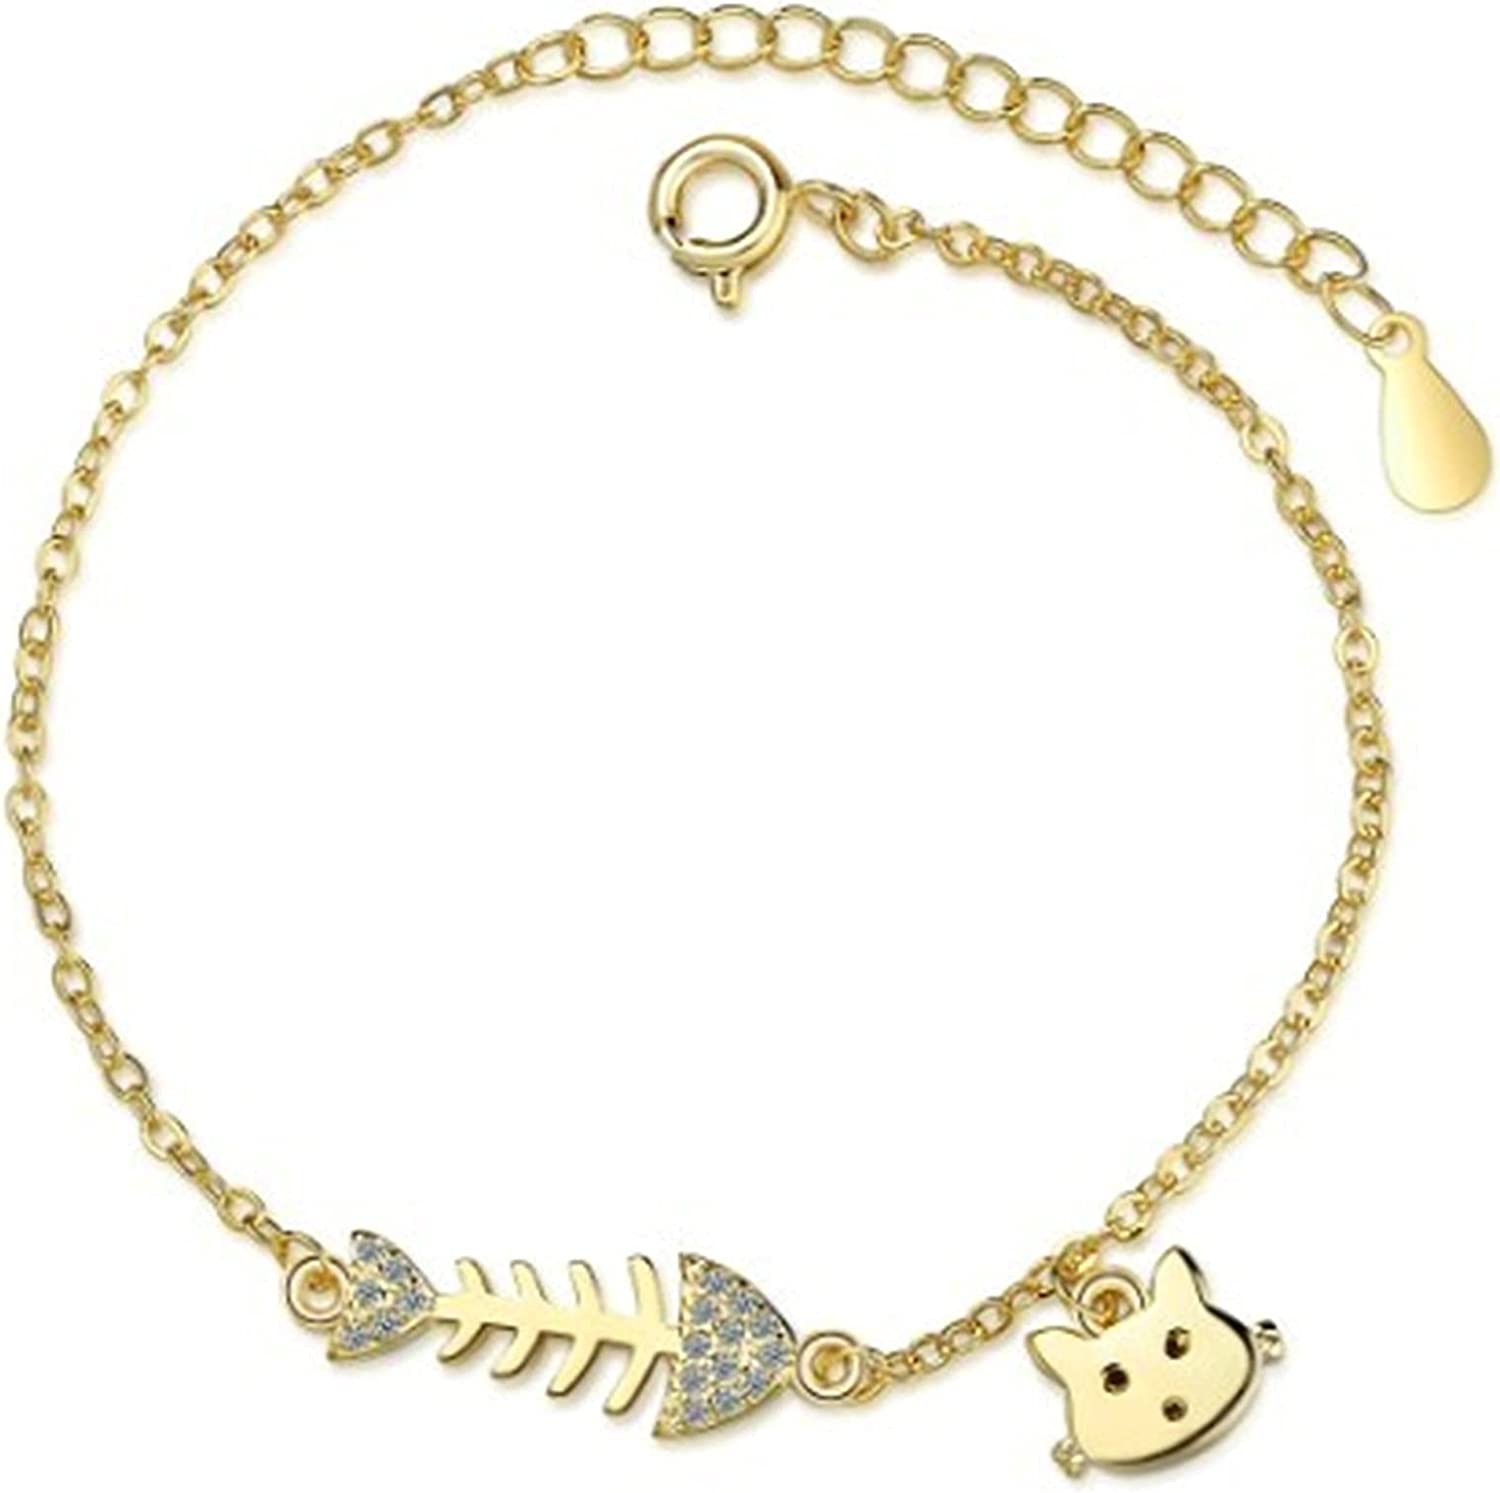 YSJJPQC Clearance SALE Limited time Bracelets 100% 925 Sterling Silver Cat 2021 spring and summer new Bone Fish Sweet